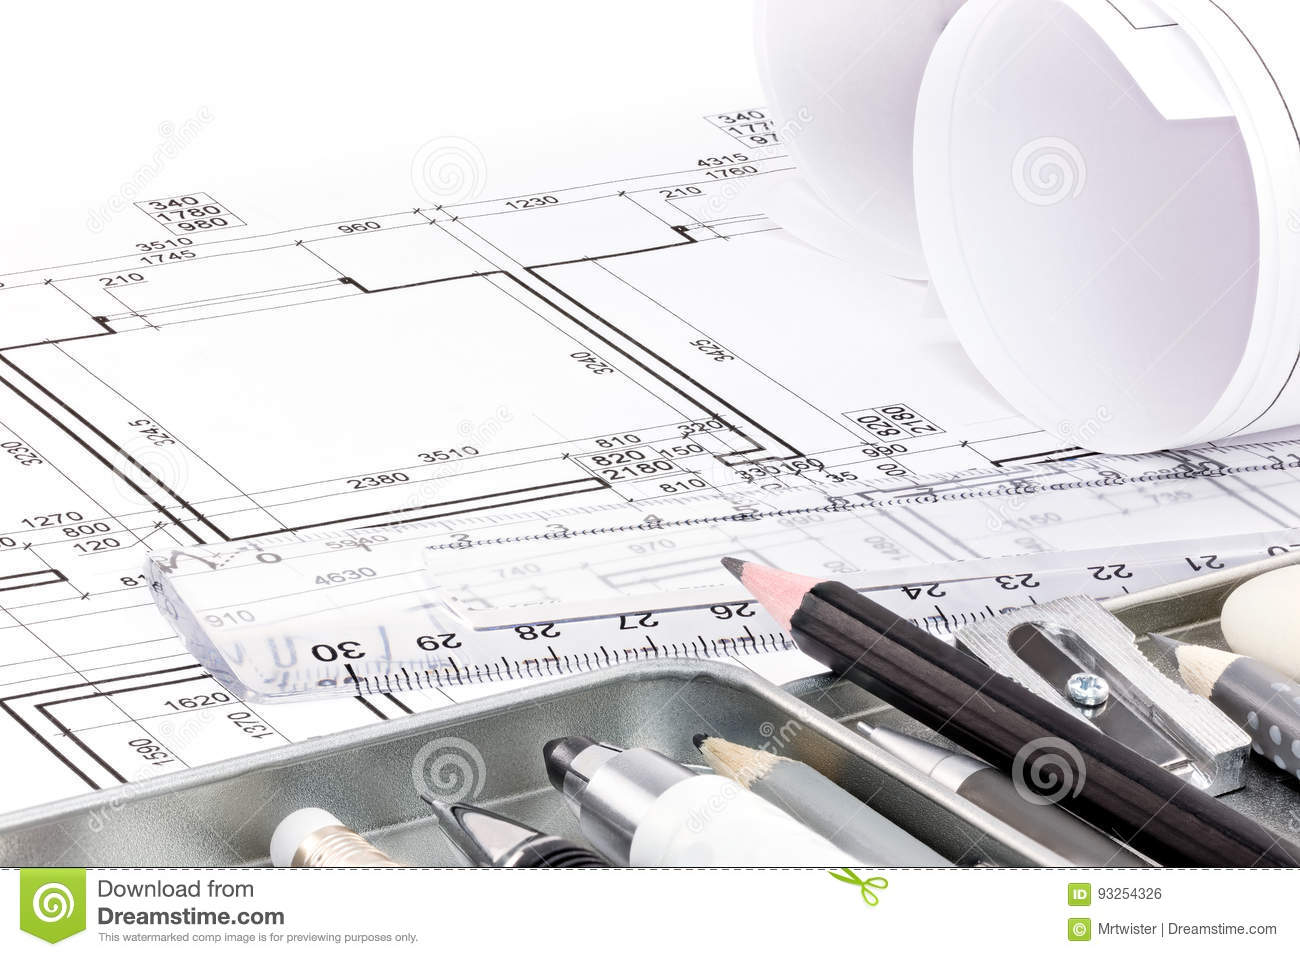 Different Drawing Tools For Designer On Architectural Of